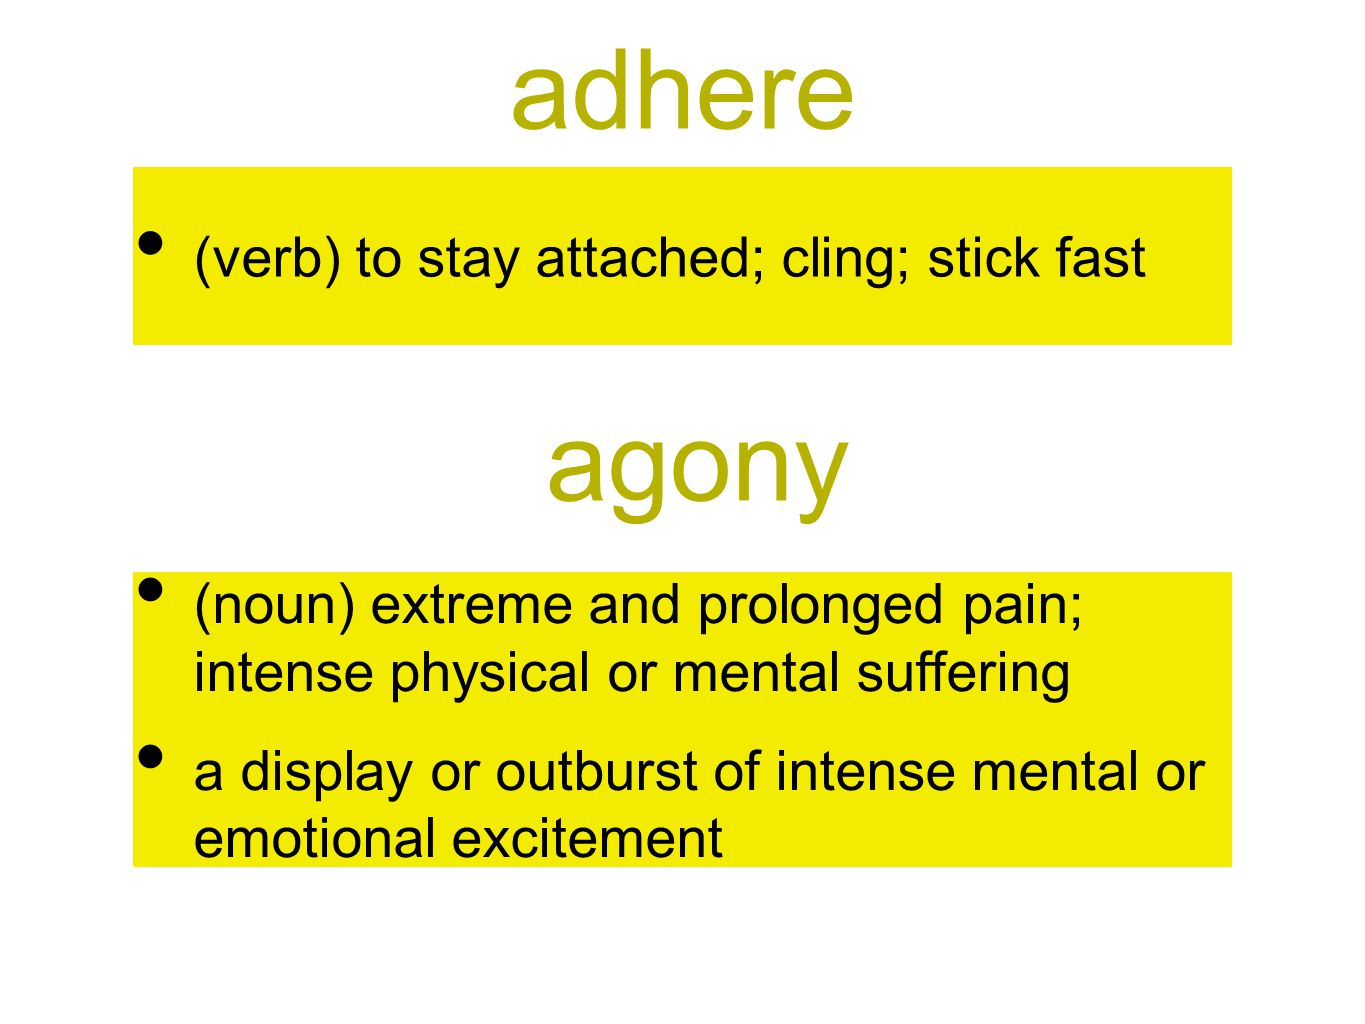 adhere (verb) to stay attached; cling; stick fast agony (noun) extreme and prolonged pain; intense physical or mental suffering a display or outburst